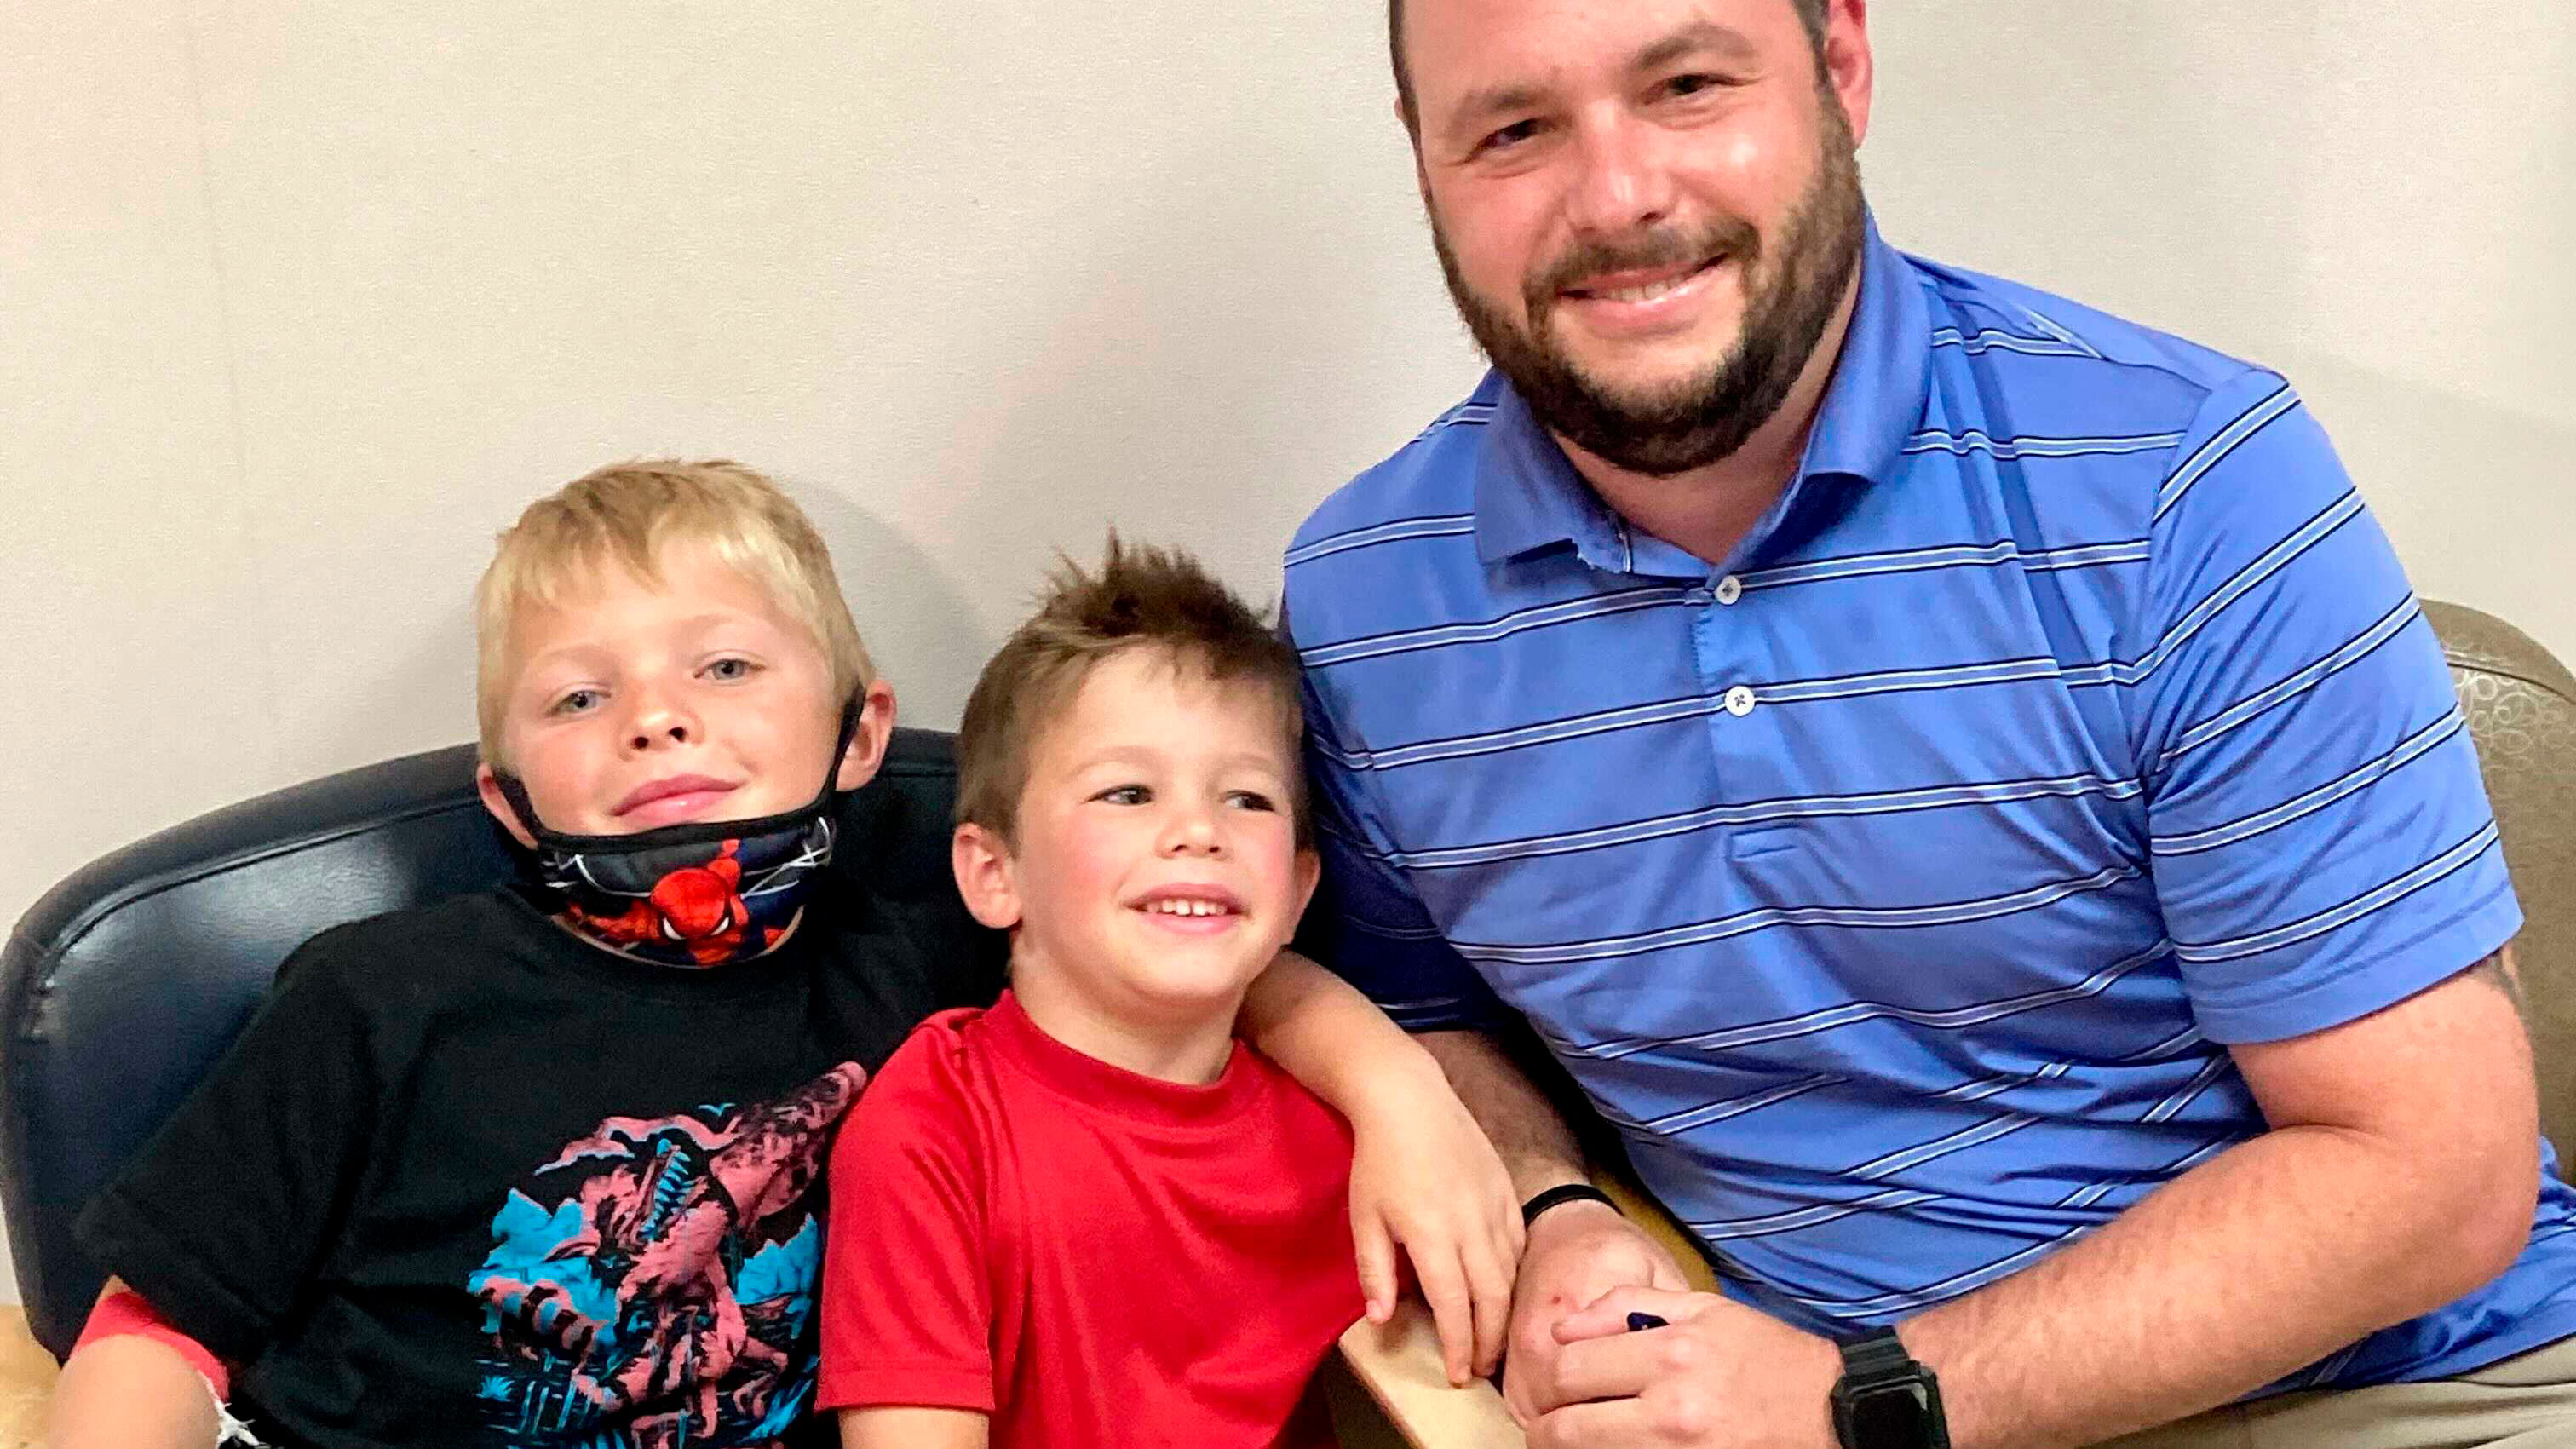 From left, 7-year-old Russell Bright, 5-year-old Tucker Bright, and dad Adam Bright pose for a picture at Ochsner Medical Center in Jefferson. Tests of Pfizer's COVID-19 vaccine started in Louisiana for children ages 5 through 11 in June.